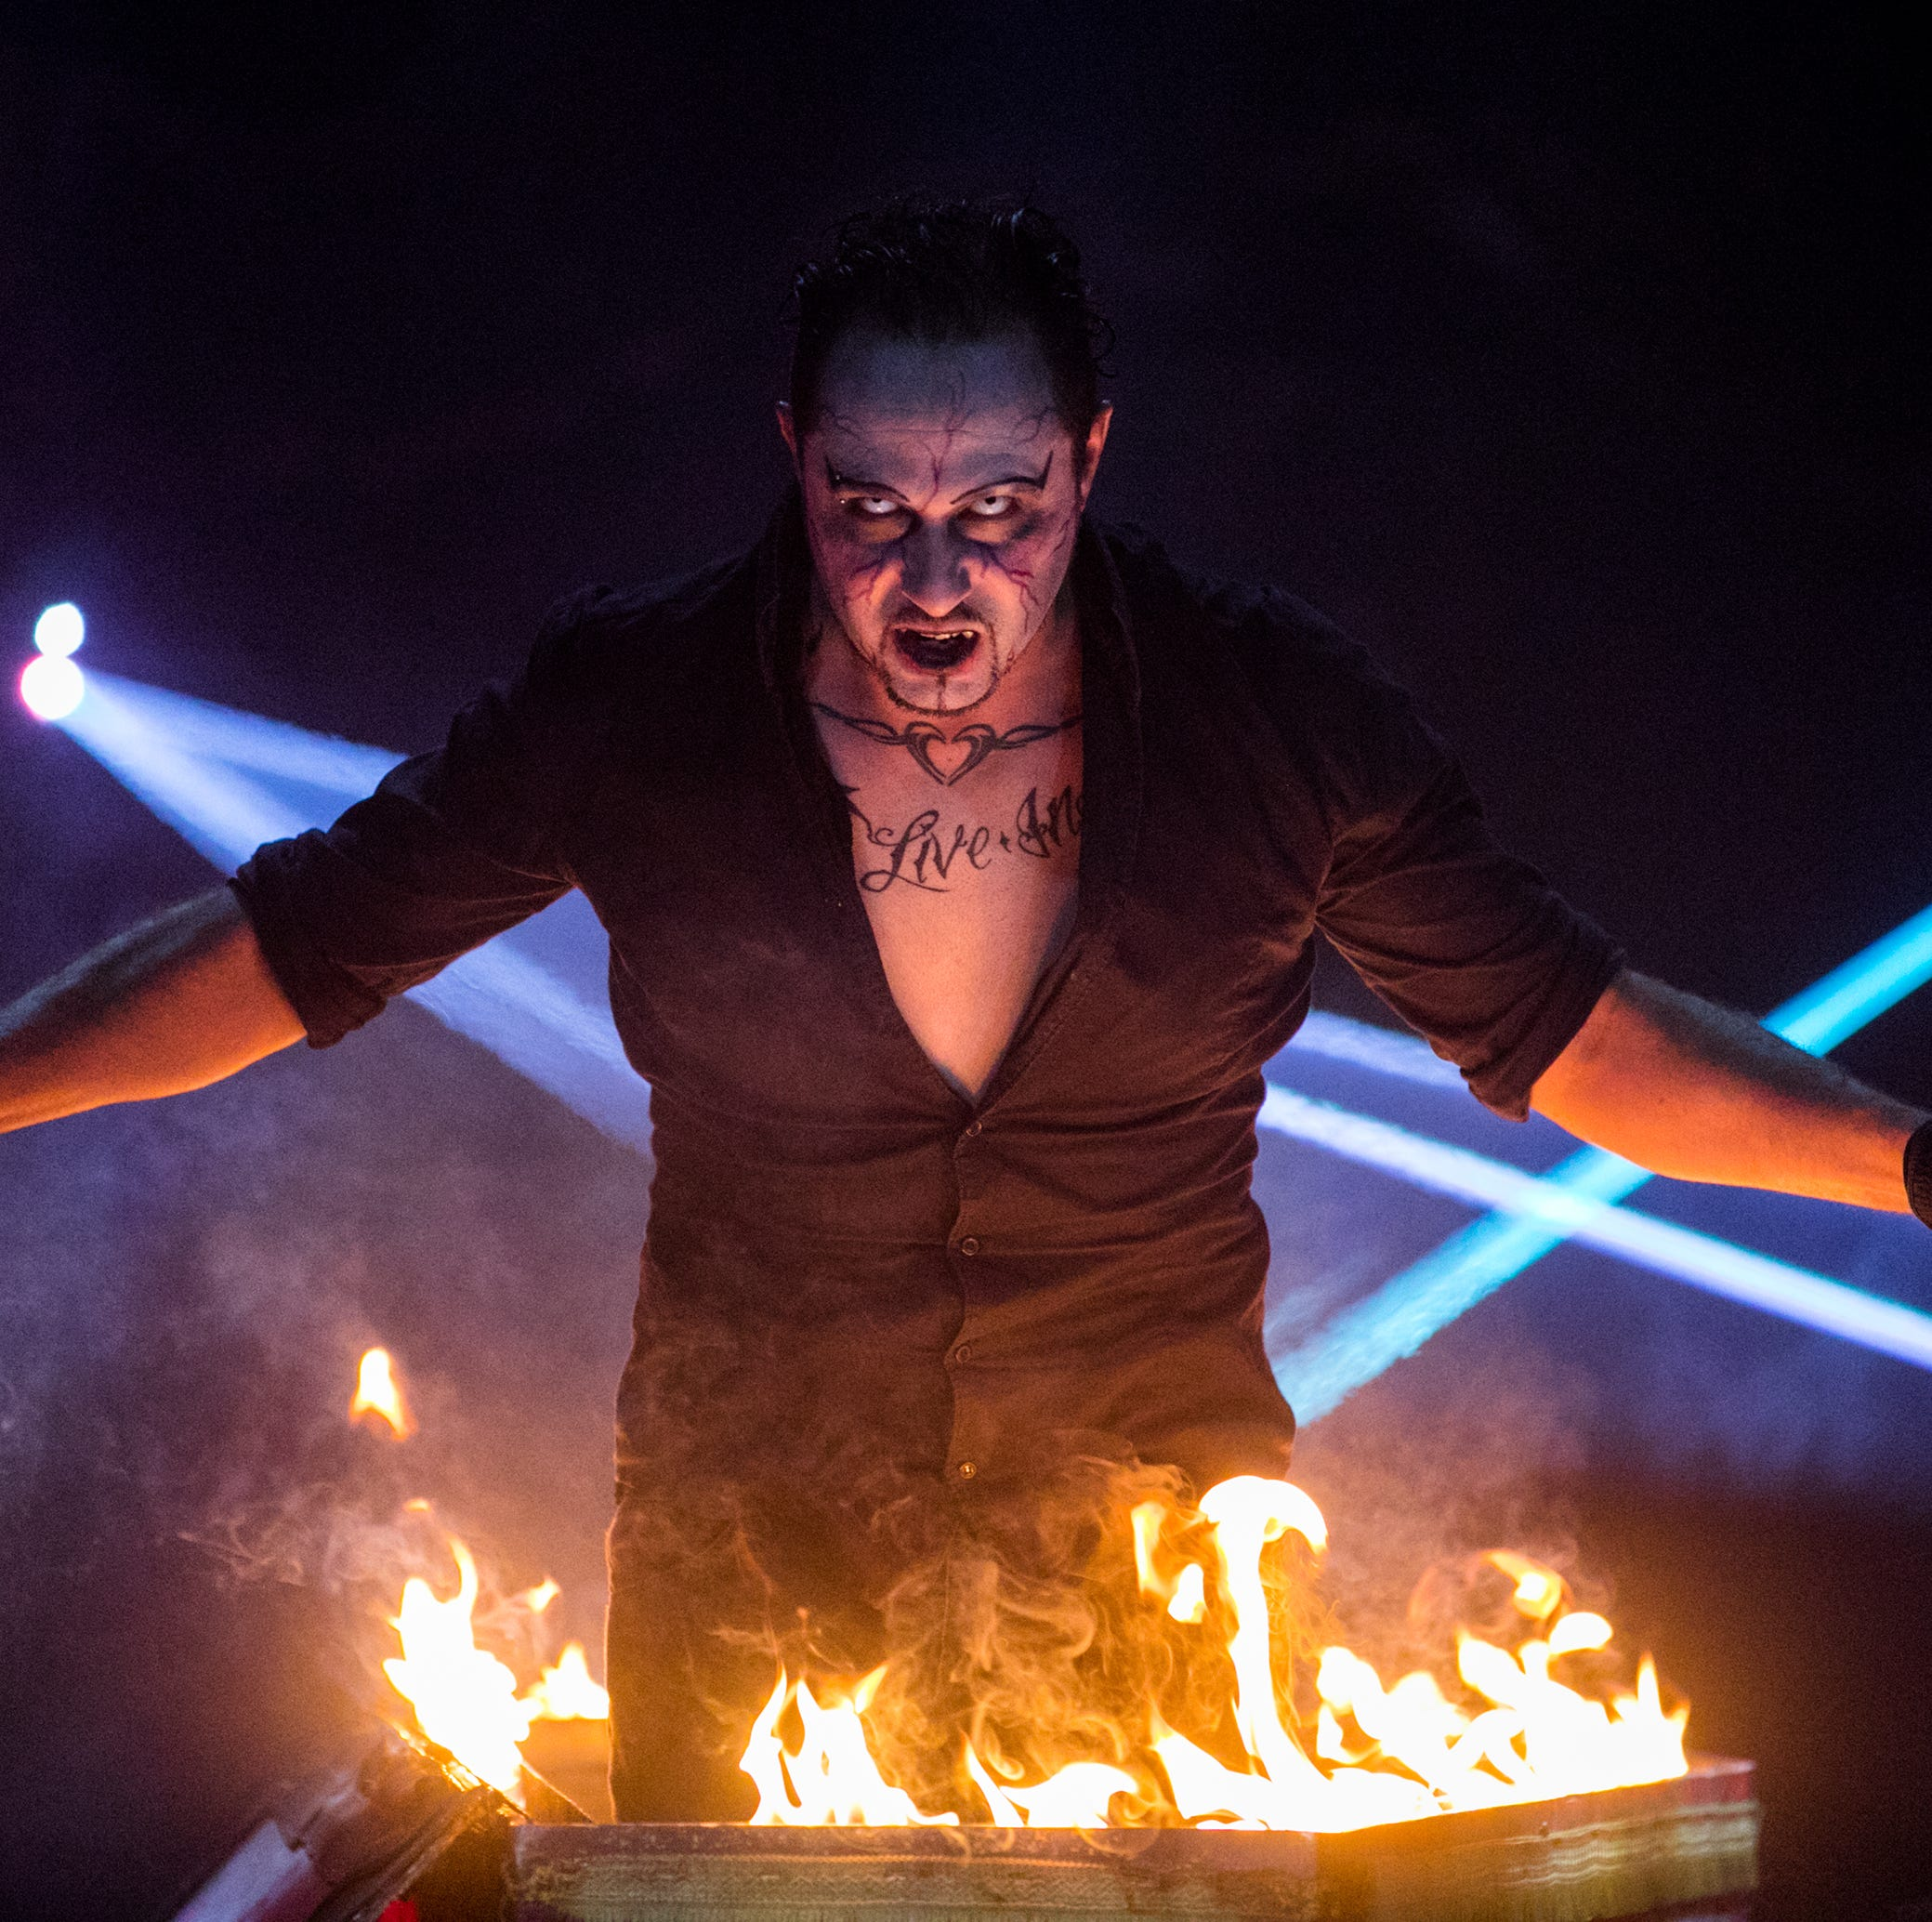 Paranormal Cirque comes to Woodbridge Center